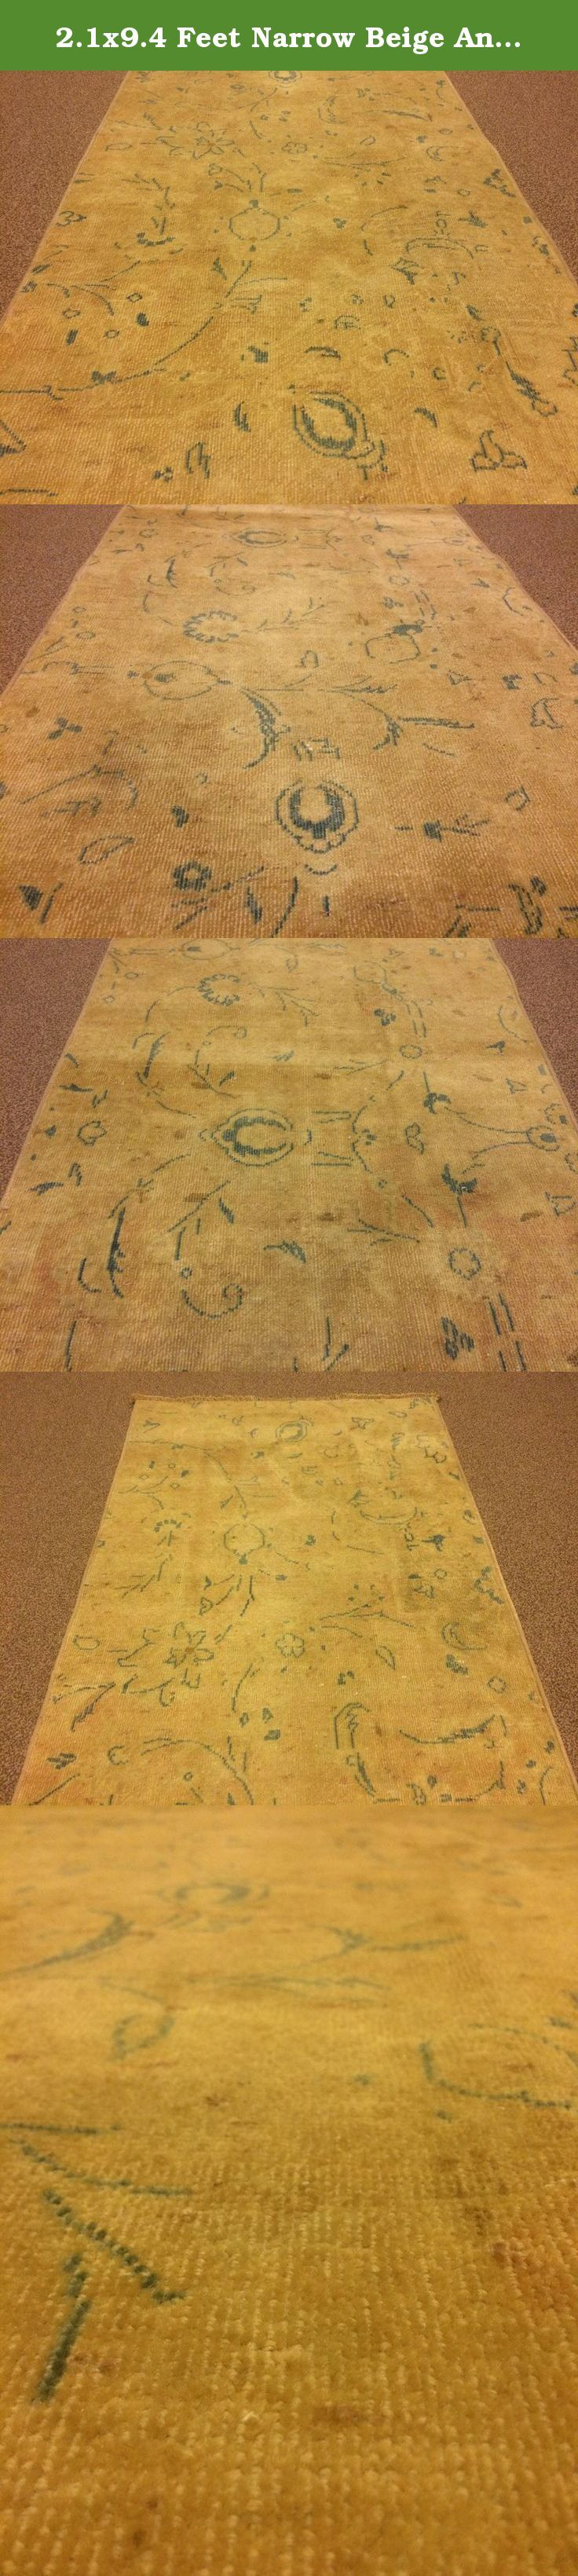 2.1x9.4 Feet Narrow Beige And Turquoise Handmade Rug Runner Flower Design Hallway And Kitchen Carpet.Code:VP577. It is %100 handmade carpet runner.All colours are natural dyed. Size:2.1x9.4 feet 62x283 cm Material:wool on cotton Code:VP577 Fast Worldwide Shipment in 1-3 business days after the order and it may take an additional 3-5 days for delivery. All items are shipped by Fedex and Ups.Please note that light effect, monitor's brightness, contrast etc. may cause a slight color…